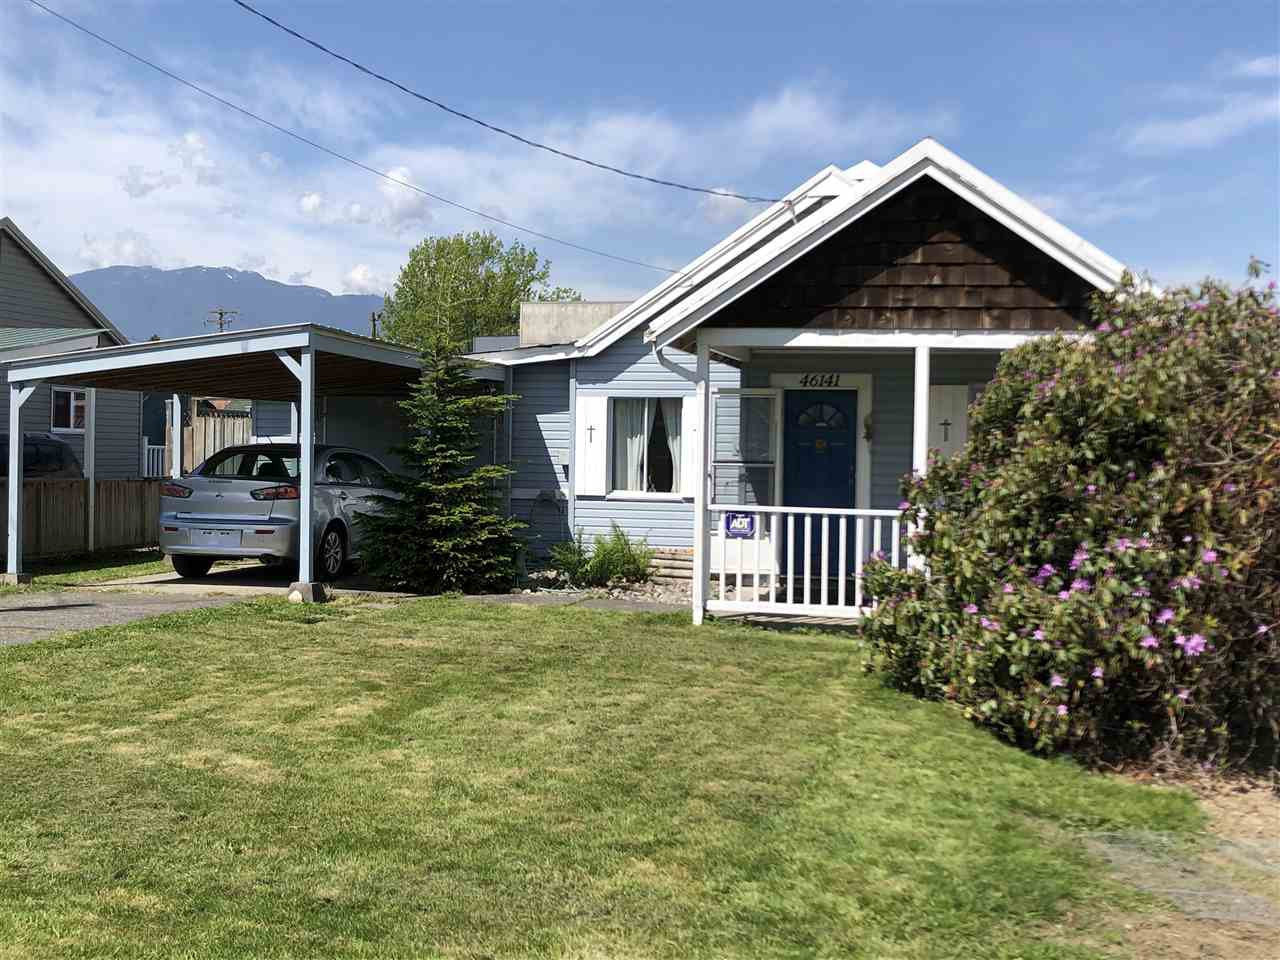 Main Photo: 46141 NORRISH AVENUE in : Chilliwack E Young-Yale House for sale : MLS®# R2361678